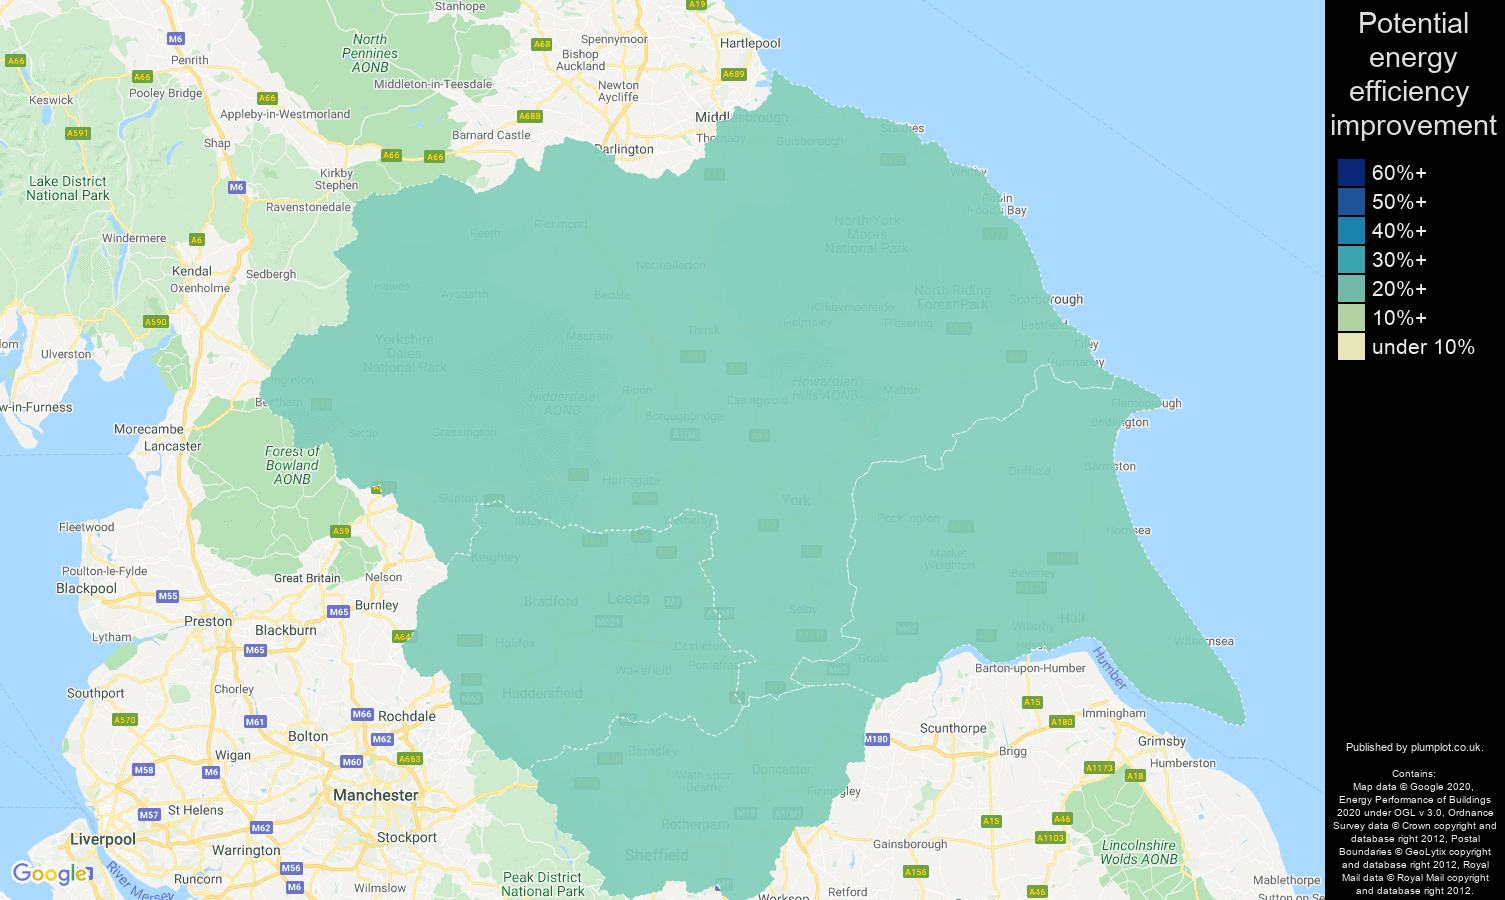 Yorkshire map of potential energy efficiency improvement of properties